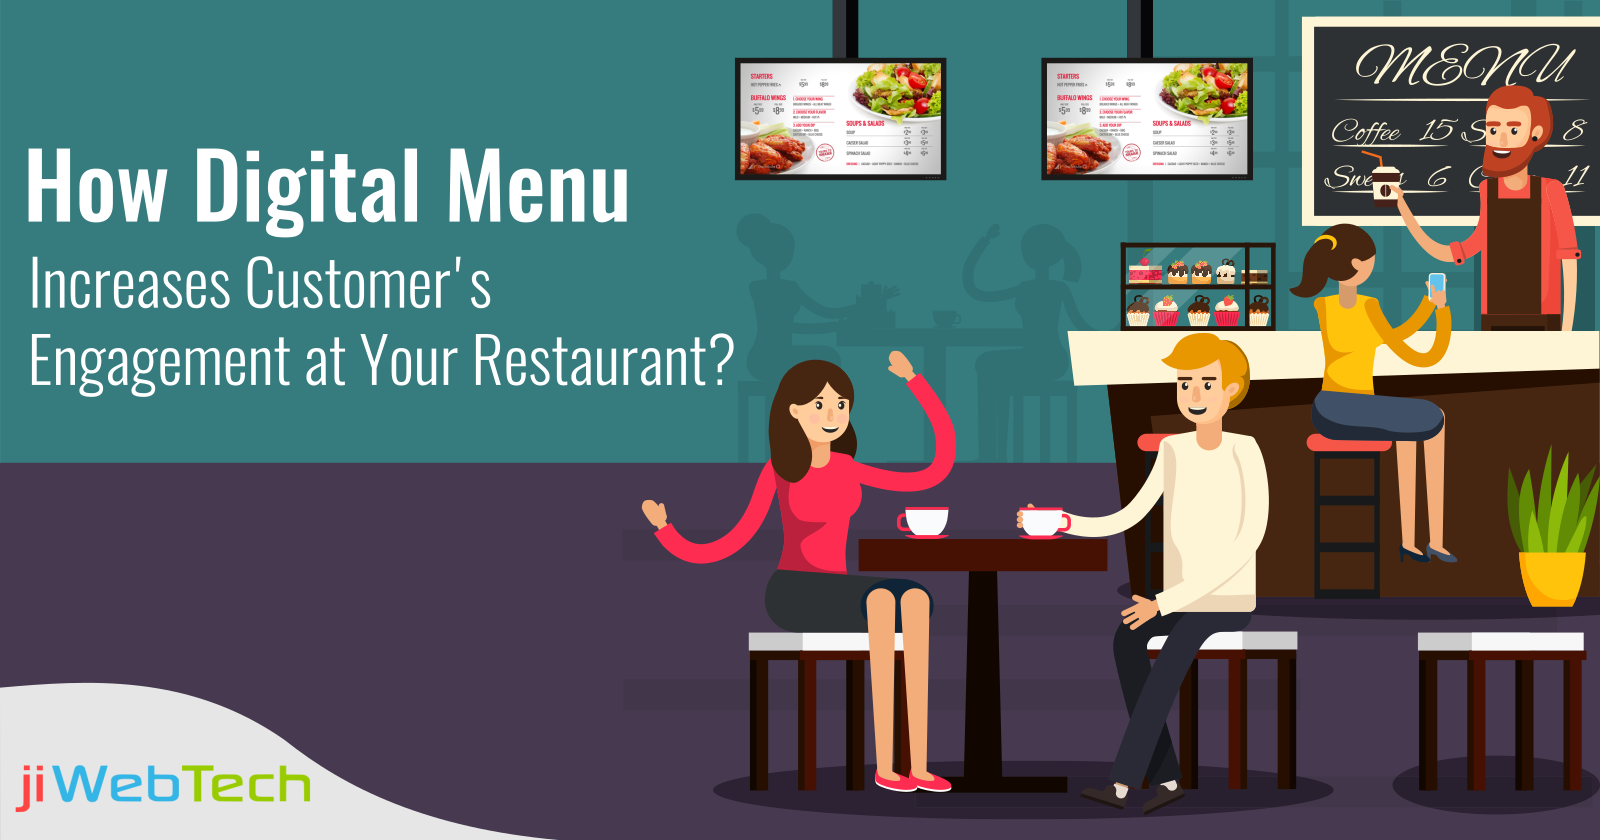 How Digital Menu Increases Customer's Engagement at Your Restaurant?